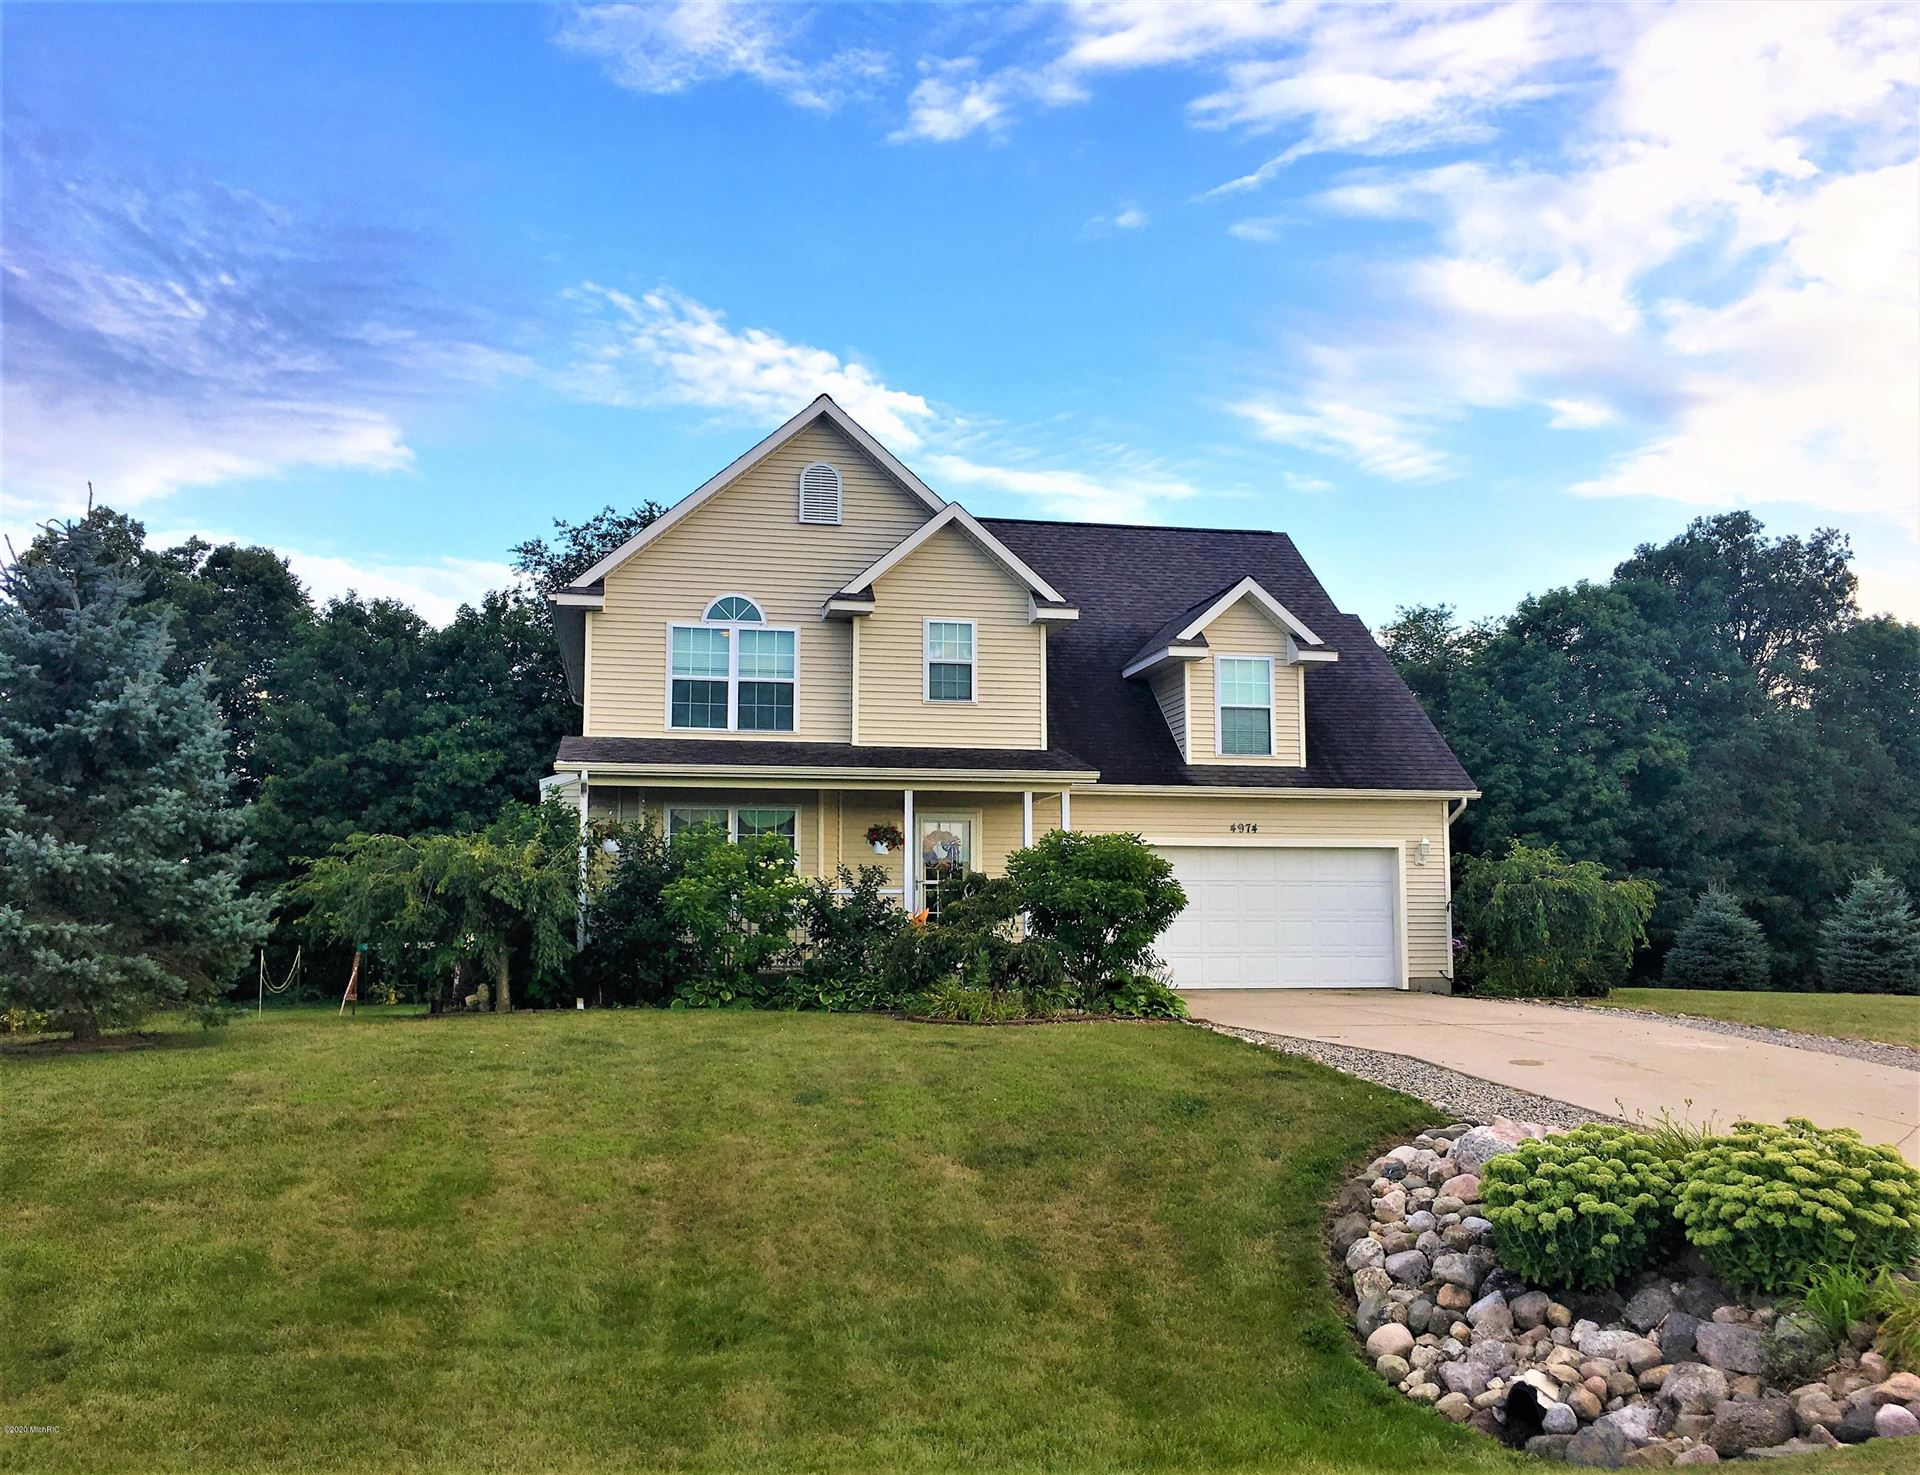 4974 Daisy Way, Fremont, MI 49412 - MLS#: 20043424